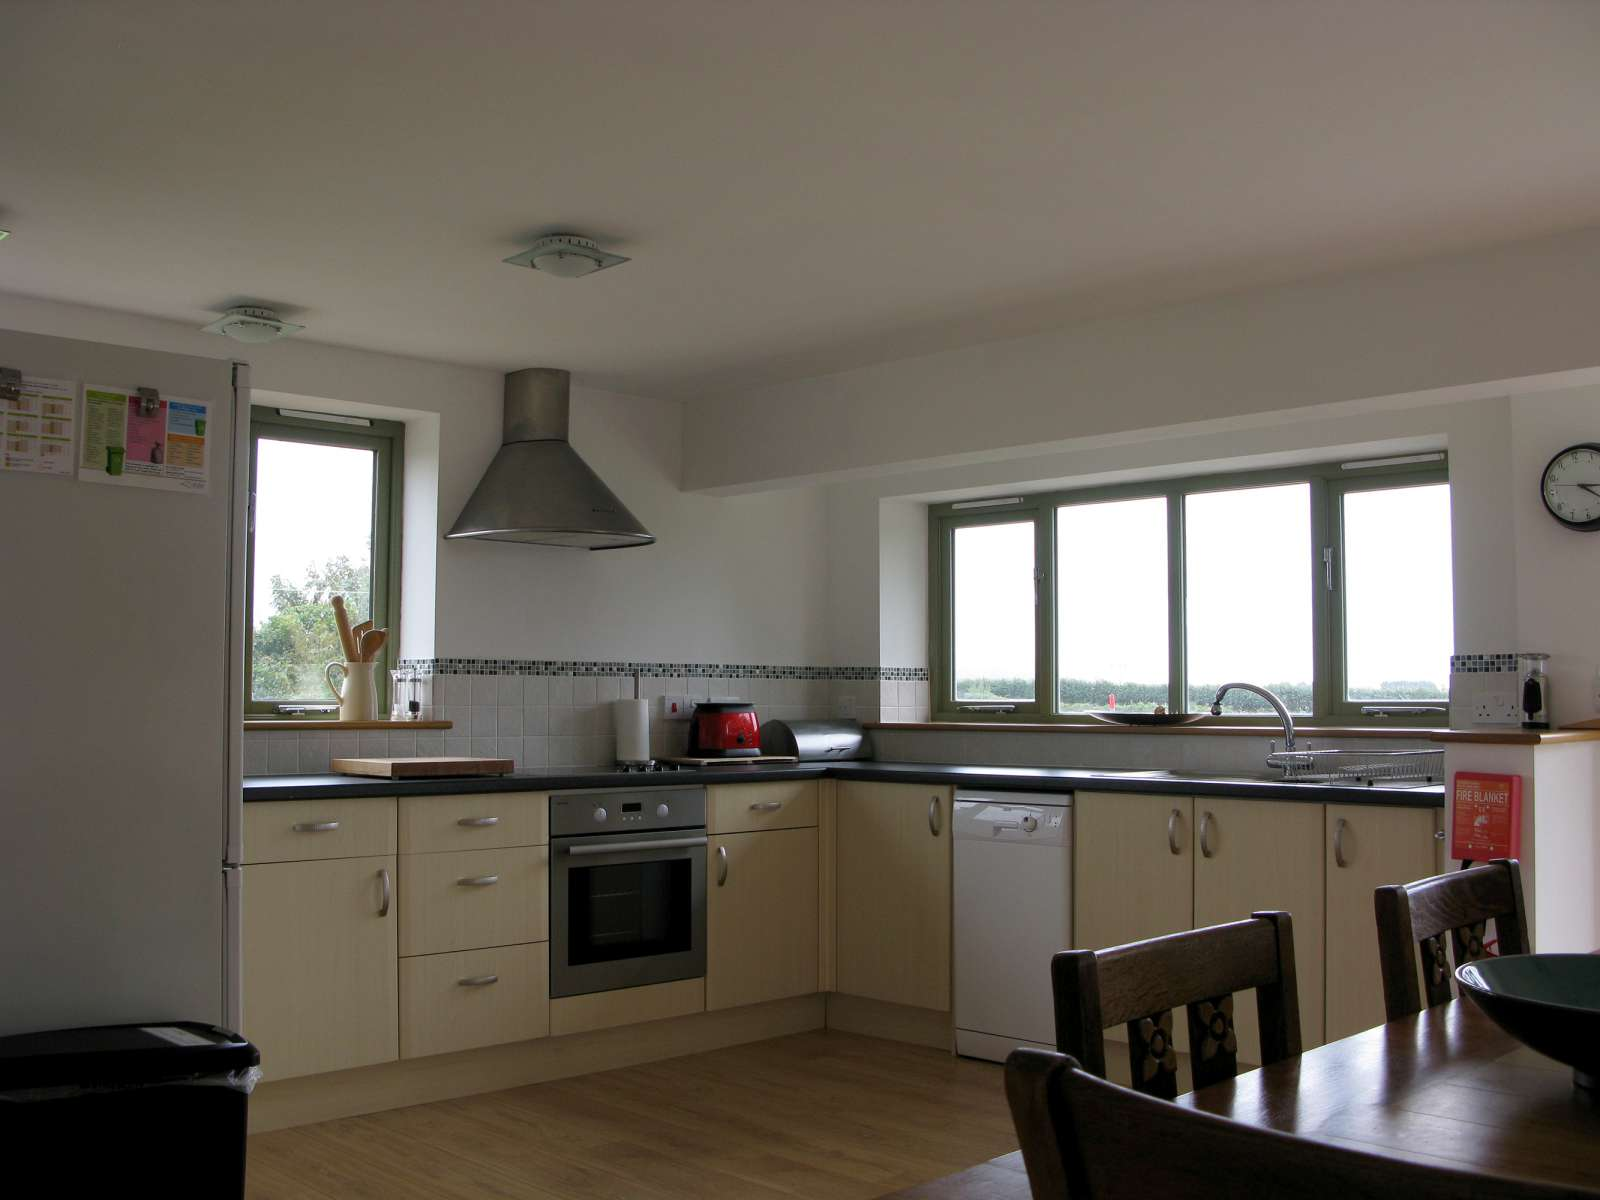 Holiday rental Cottage in Shorwell - Kitchen/Diner is fully equiped to make your stay home-from-home.